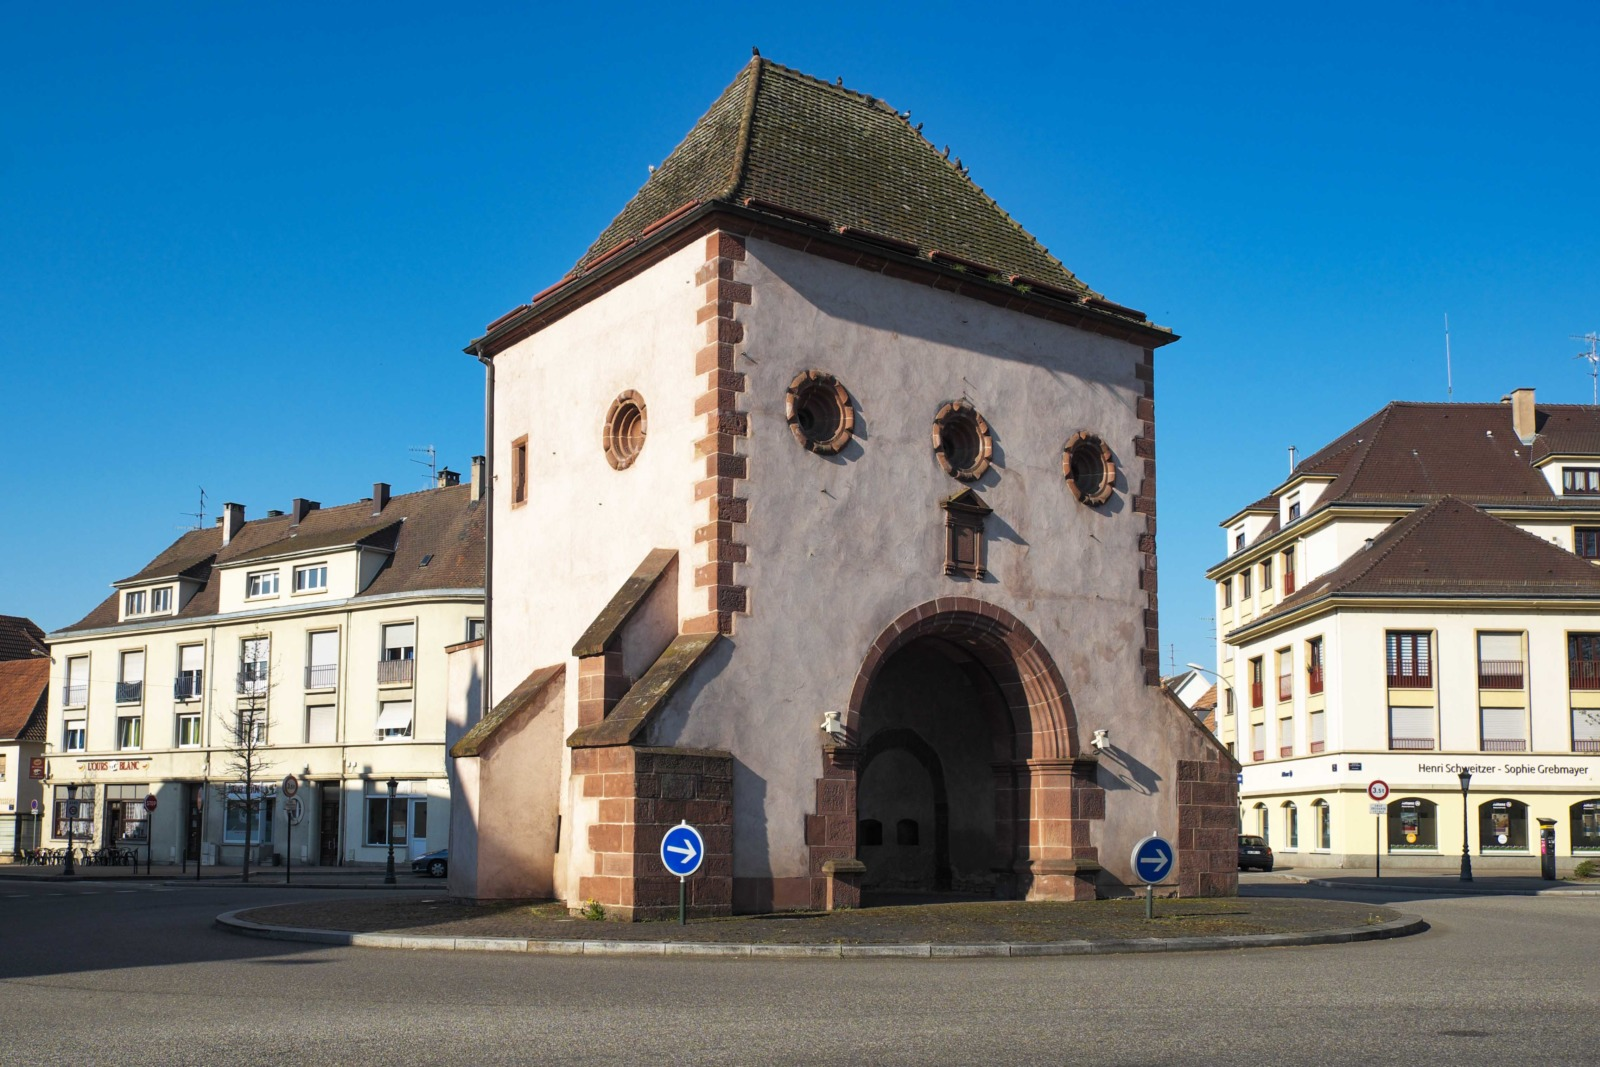 City gates of Alsace - Haguenau Porte de Wissembourg © GFreihalter - licence [CC BY-SA 3.0] from Wikimedia Commons